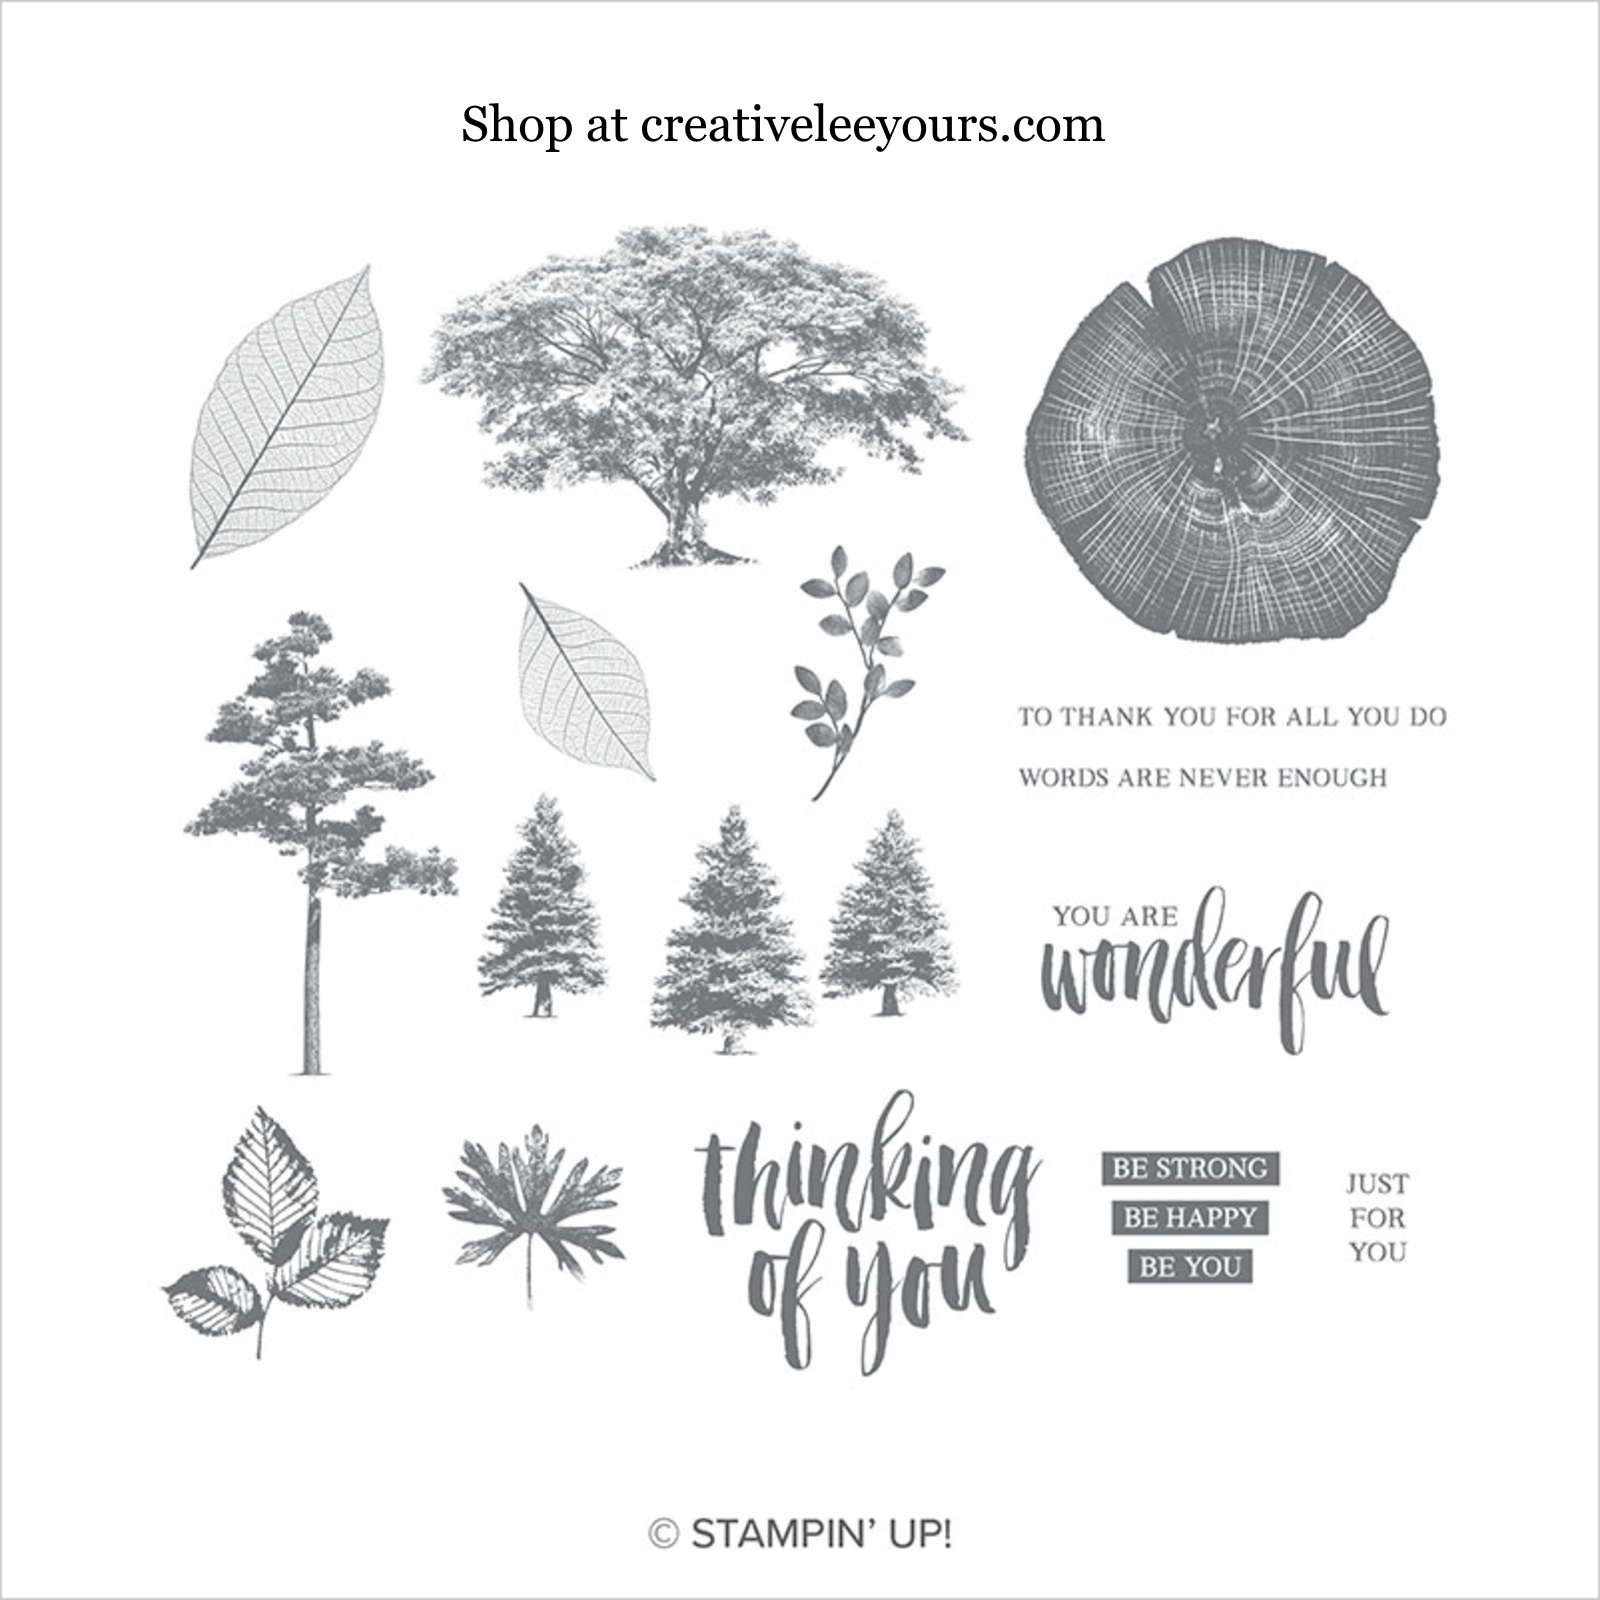 Fond Farewell to Rooted In Nature by Wendy Lee, Tutorial, card club, stampin Up, SU, #creativeleeyours, hand made card, thankful, gratitude, sympathy, watercolor, birthday, pattern paper, stamping, creatively yours, creative-lee yours, winter woods stamp set, kindness & compassion stamp set, DIY, masculine, tree, fall, #stampinup , #su , #stampinupdemonstrator , #cardmaking, #handmadecard, #rubberstamps, #stamping,